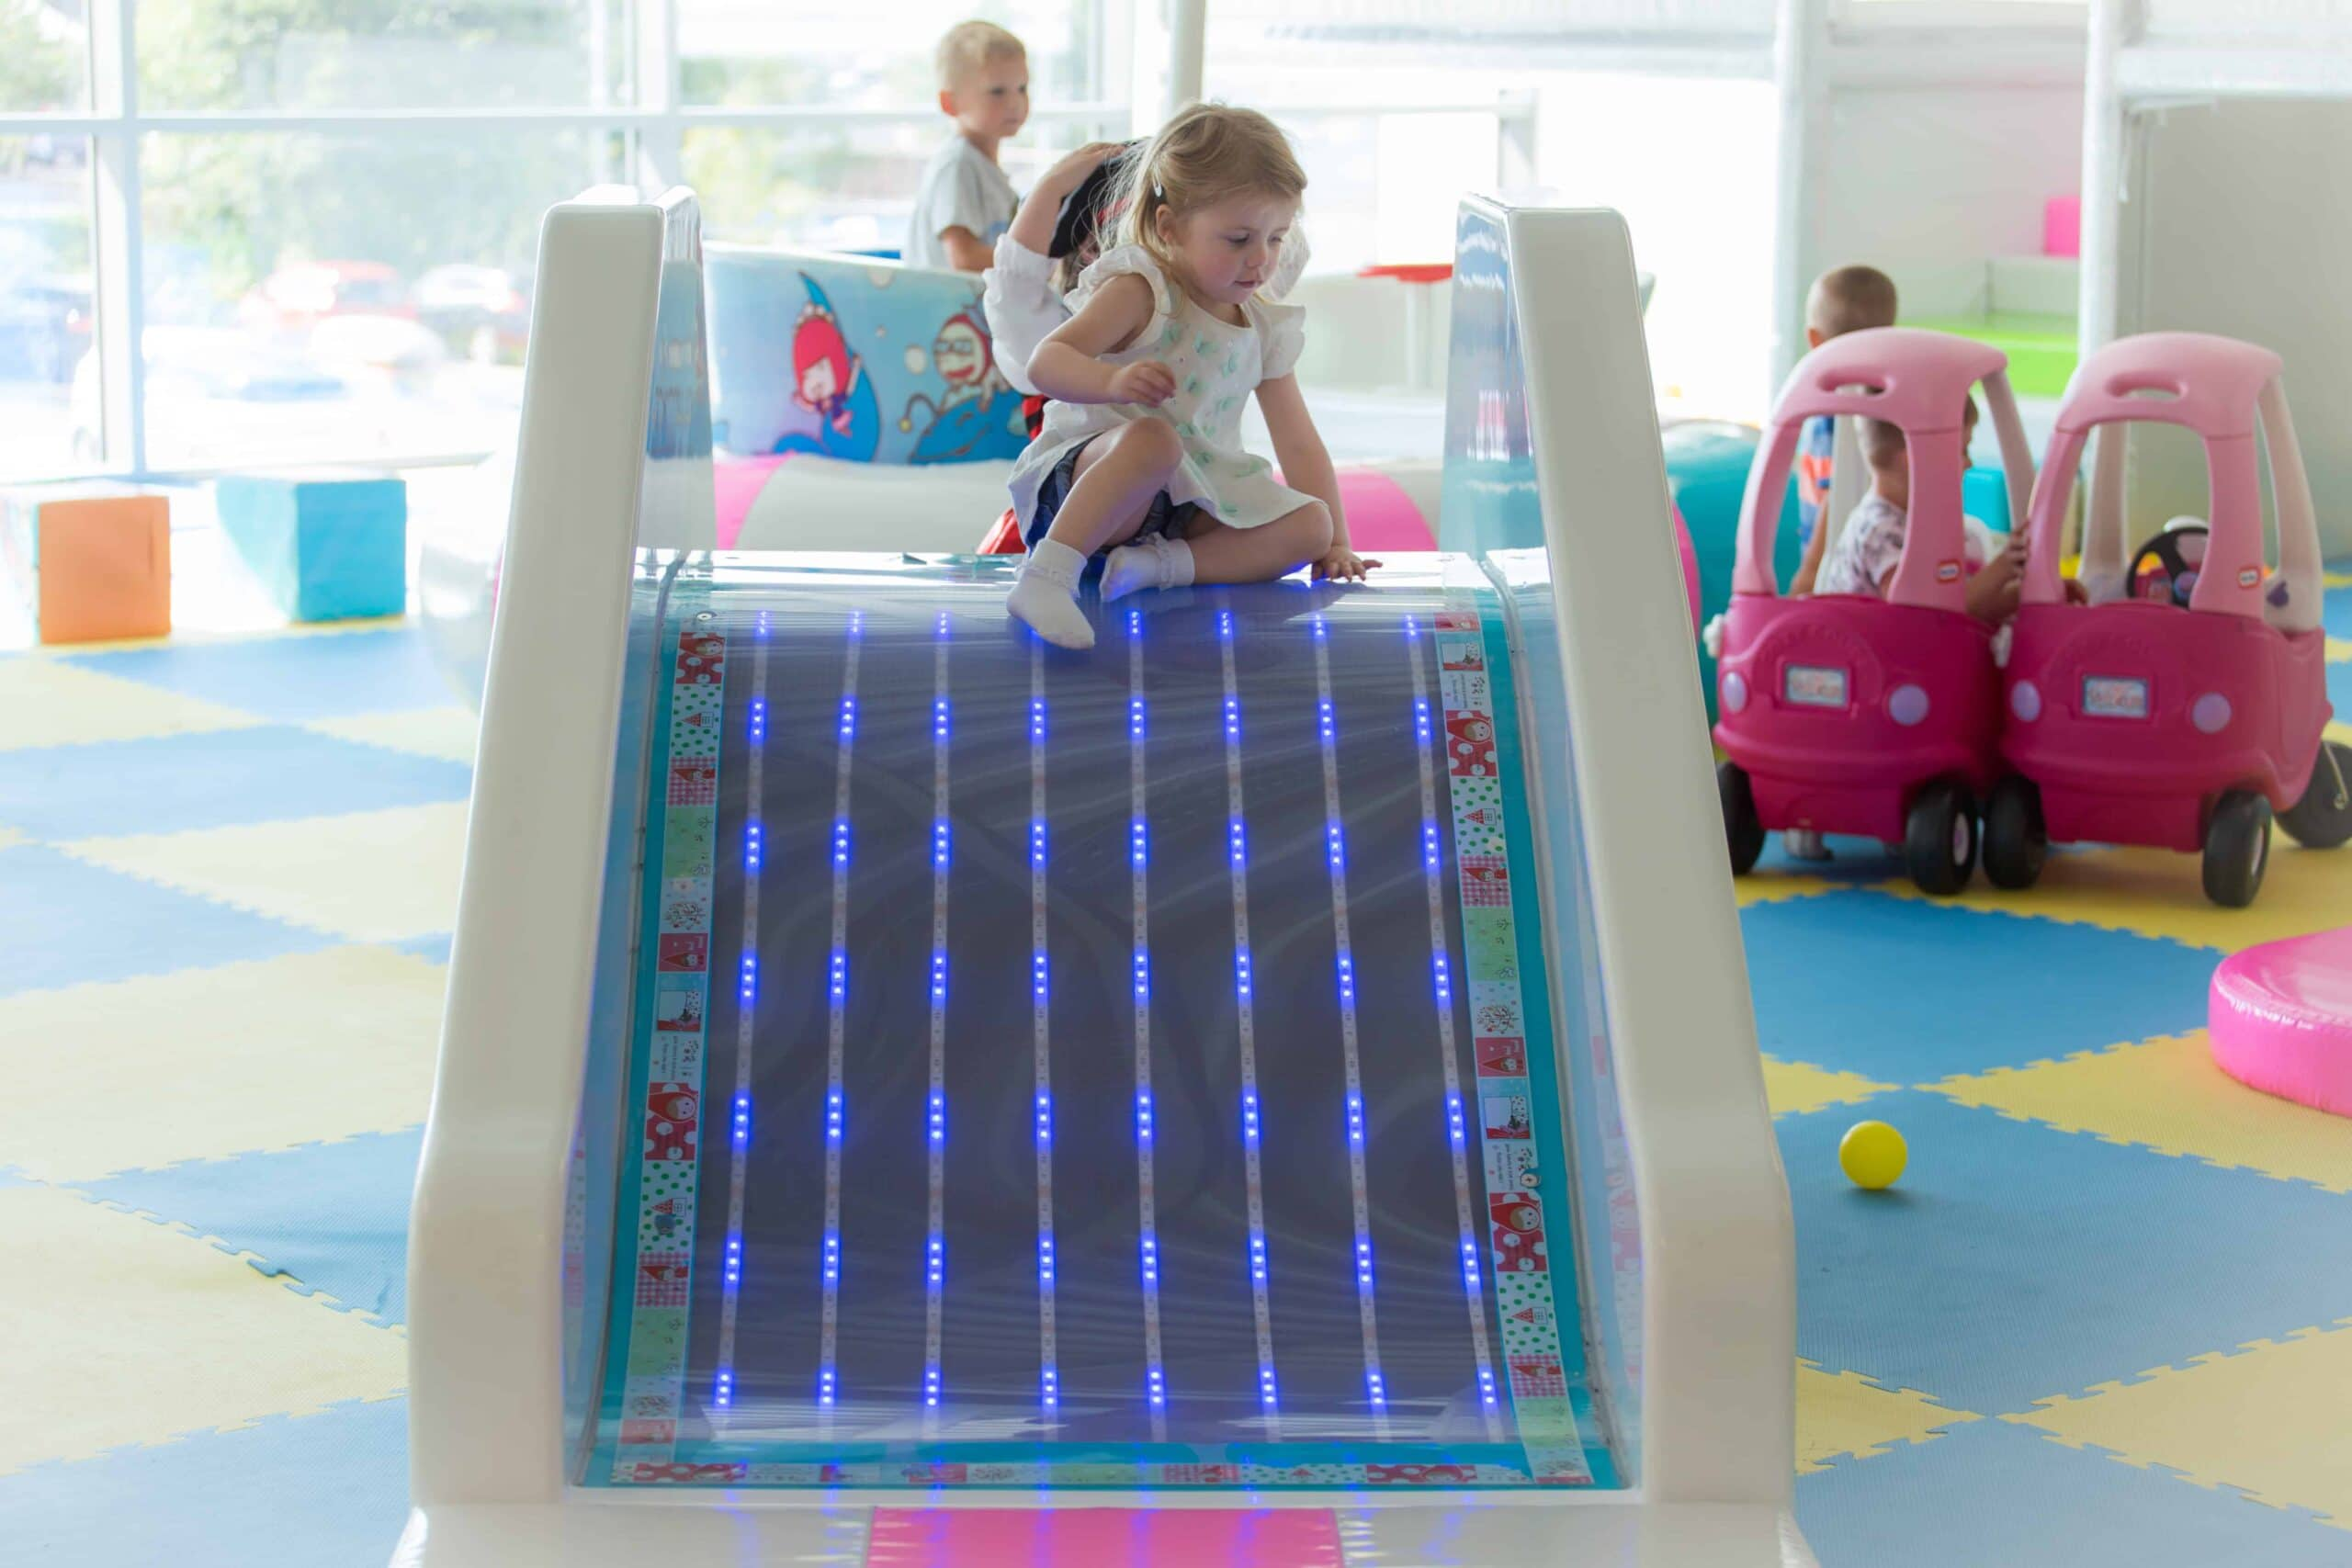 Skills, security and storytelling: 3 benefits of sensory soft play